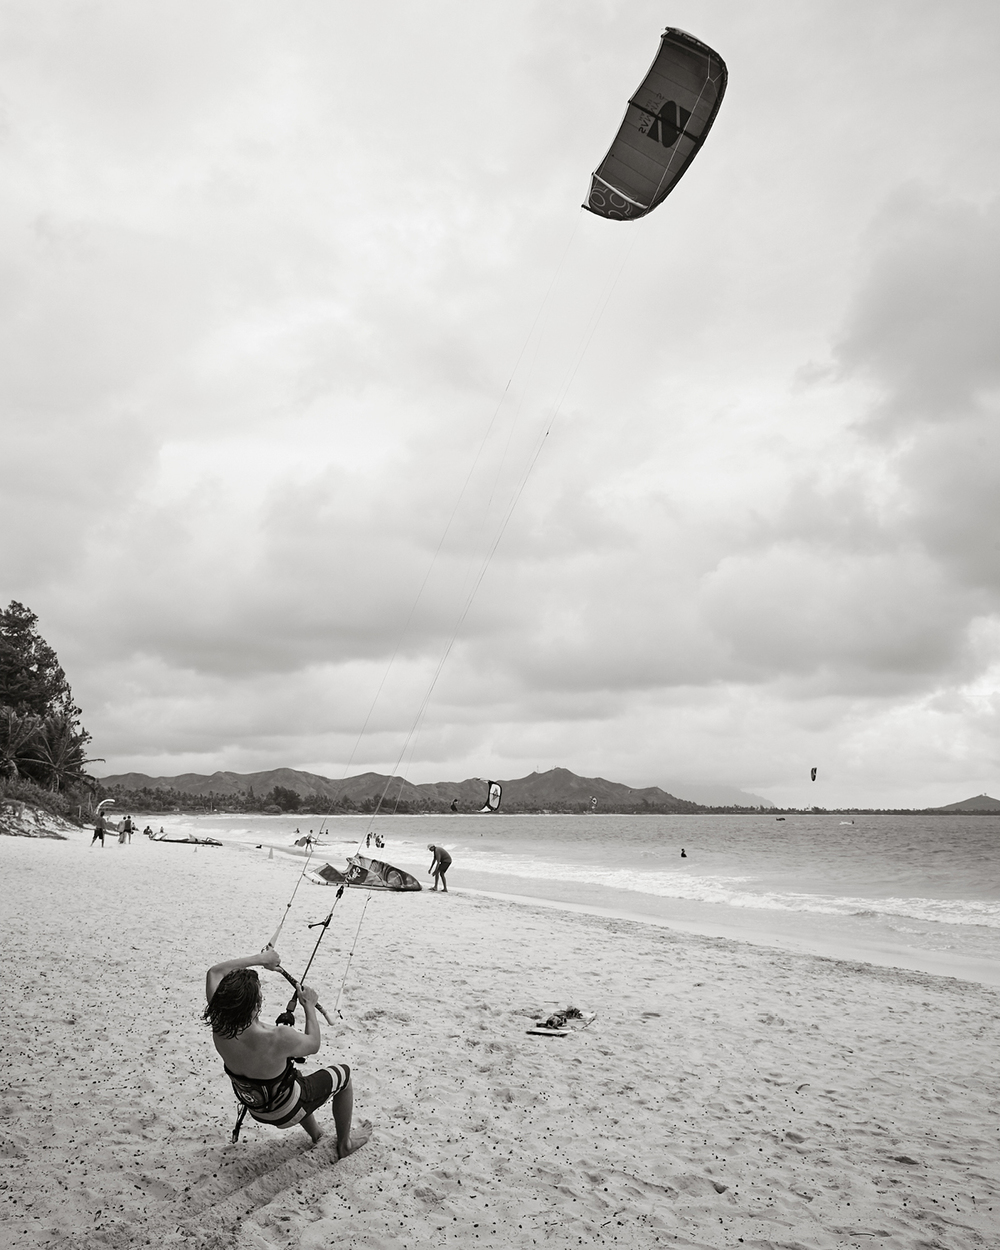 RAISING THE KITE AT KAILUA BEACH PARK